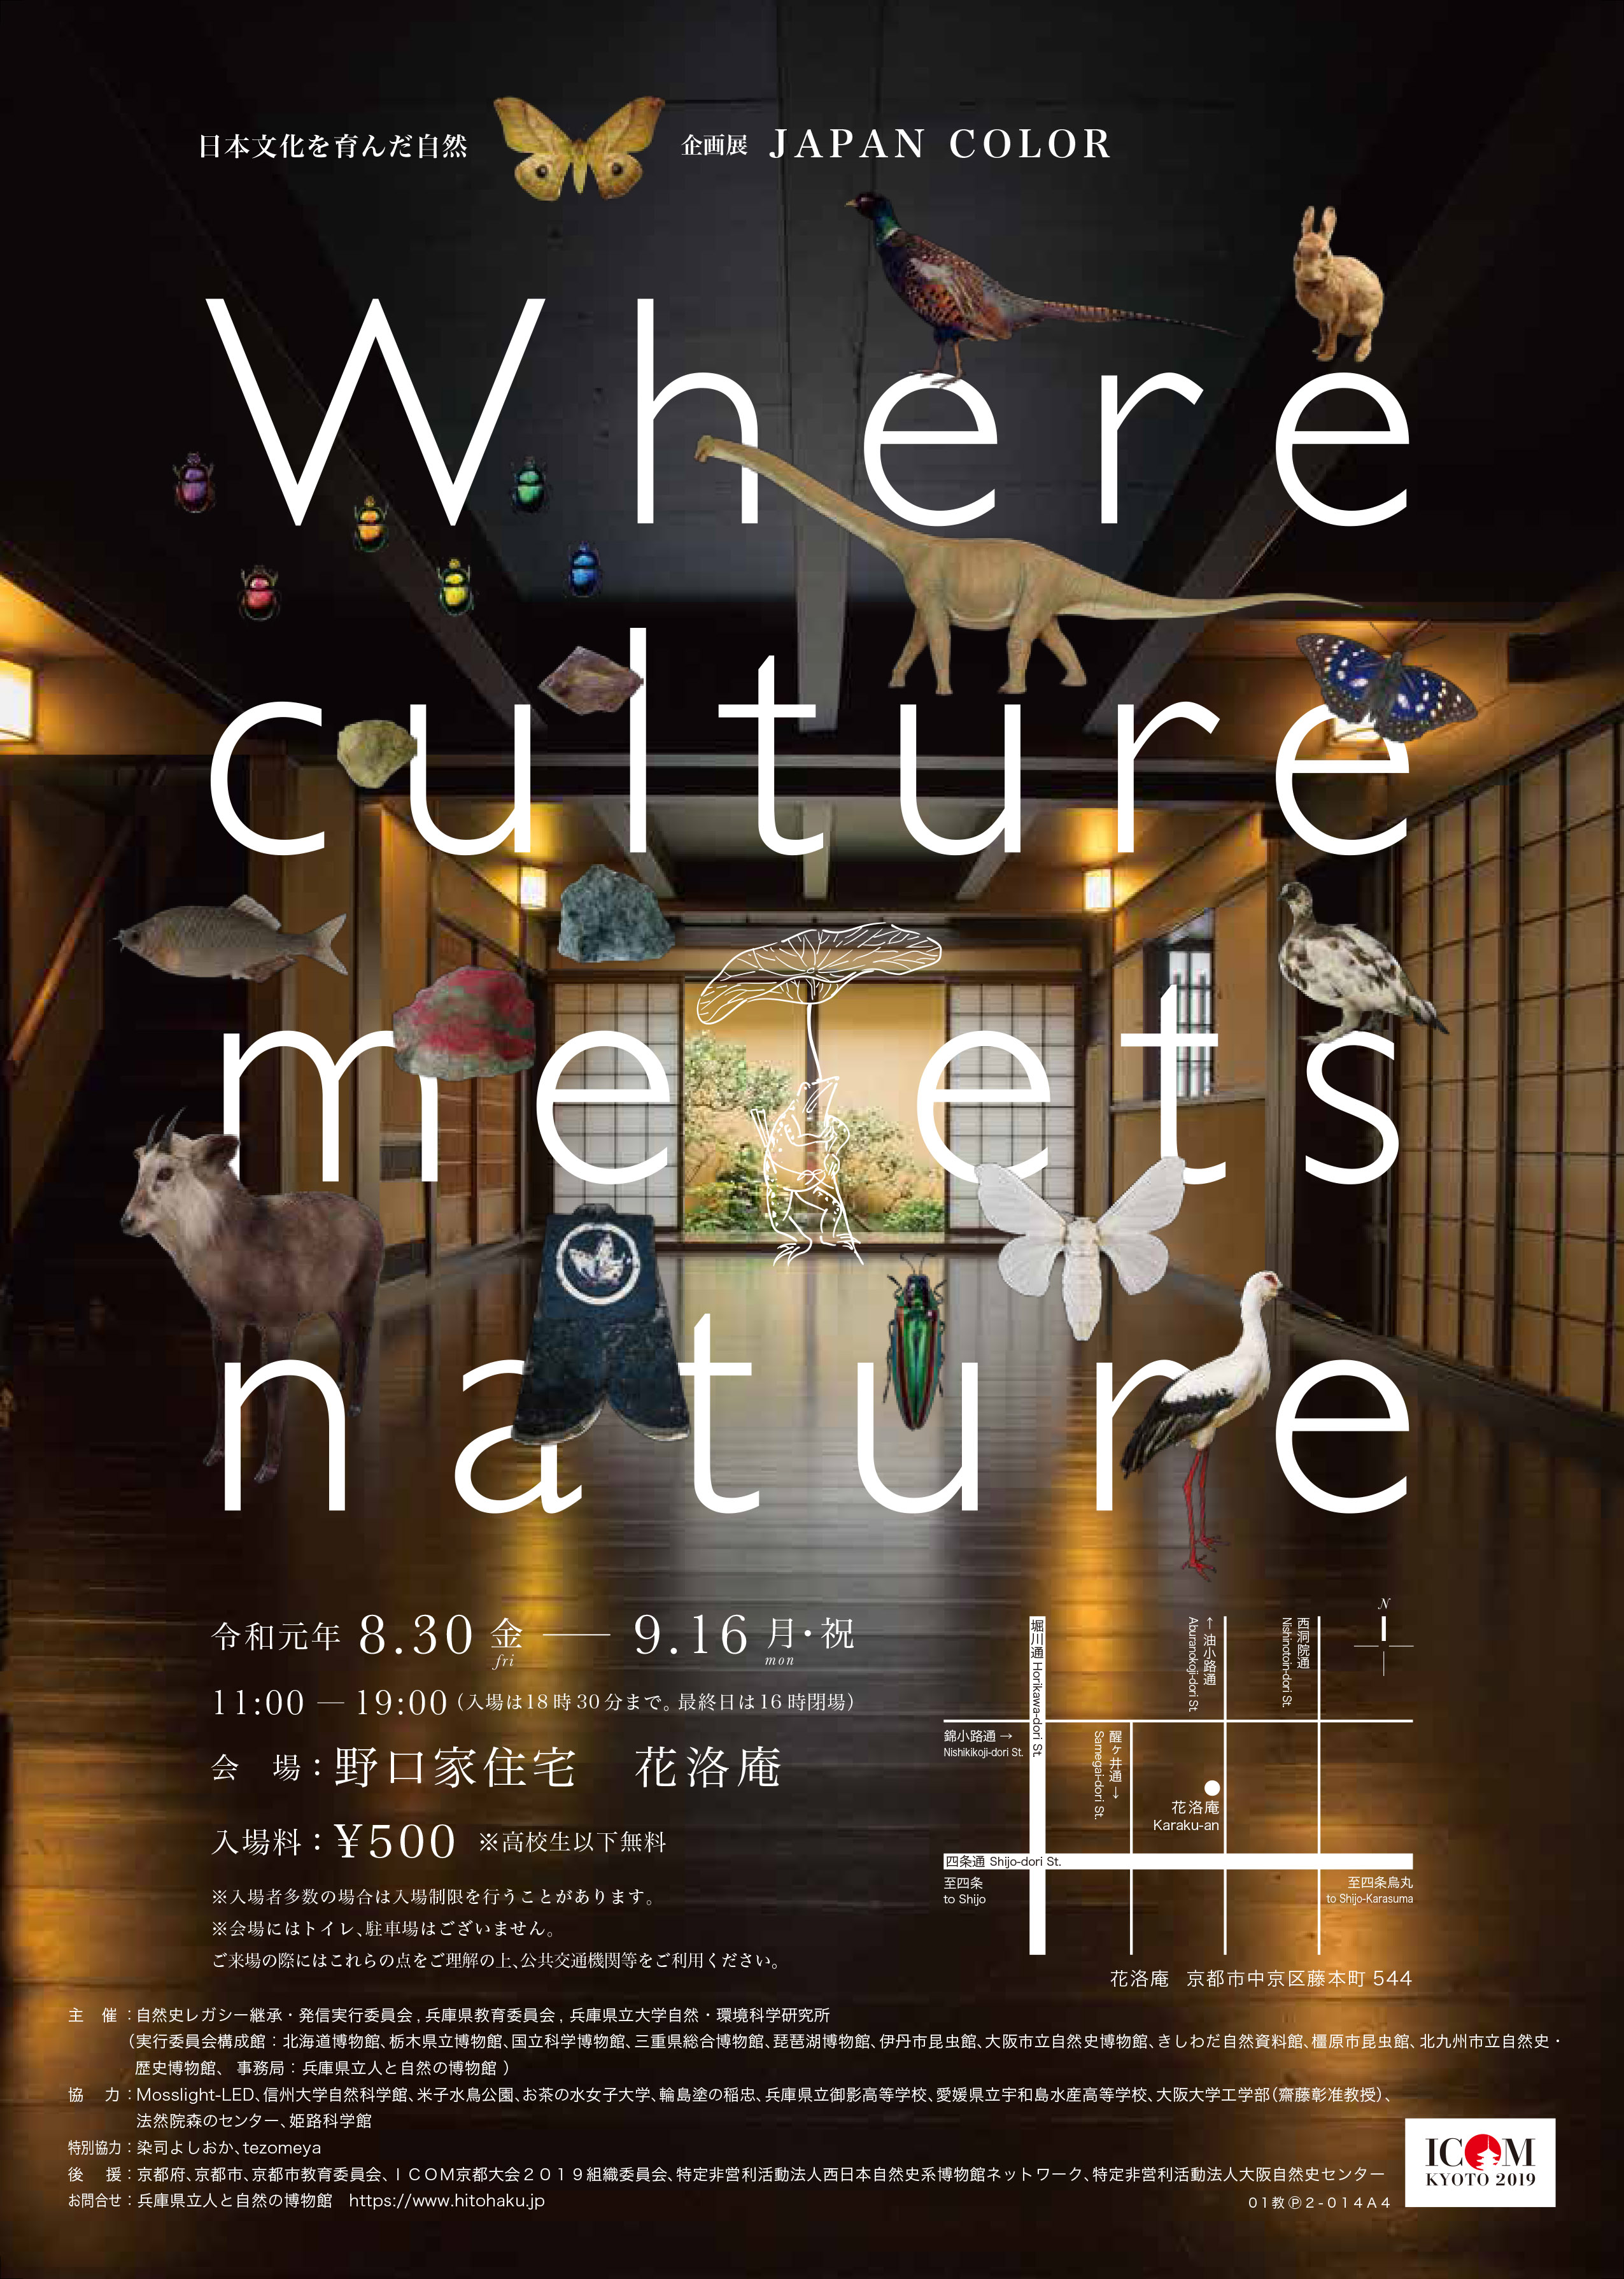 「Where culture meets nature~日本文化を育んだ自然~」